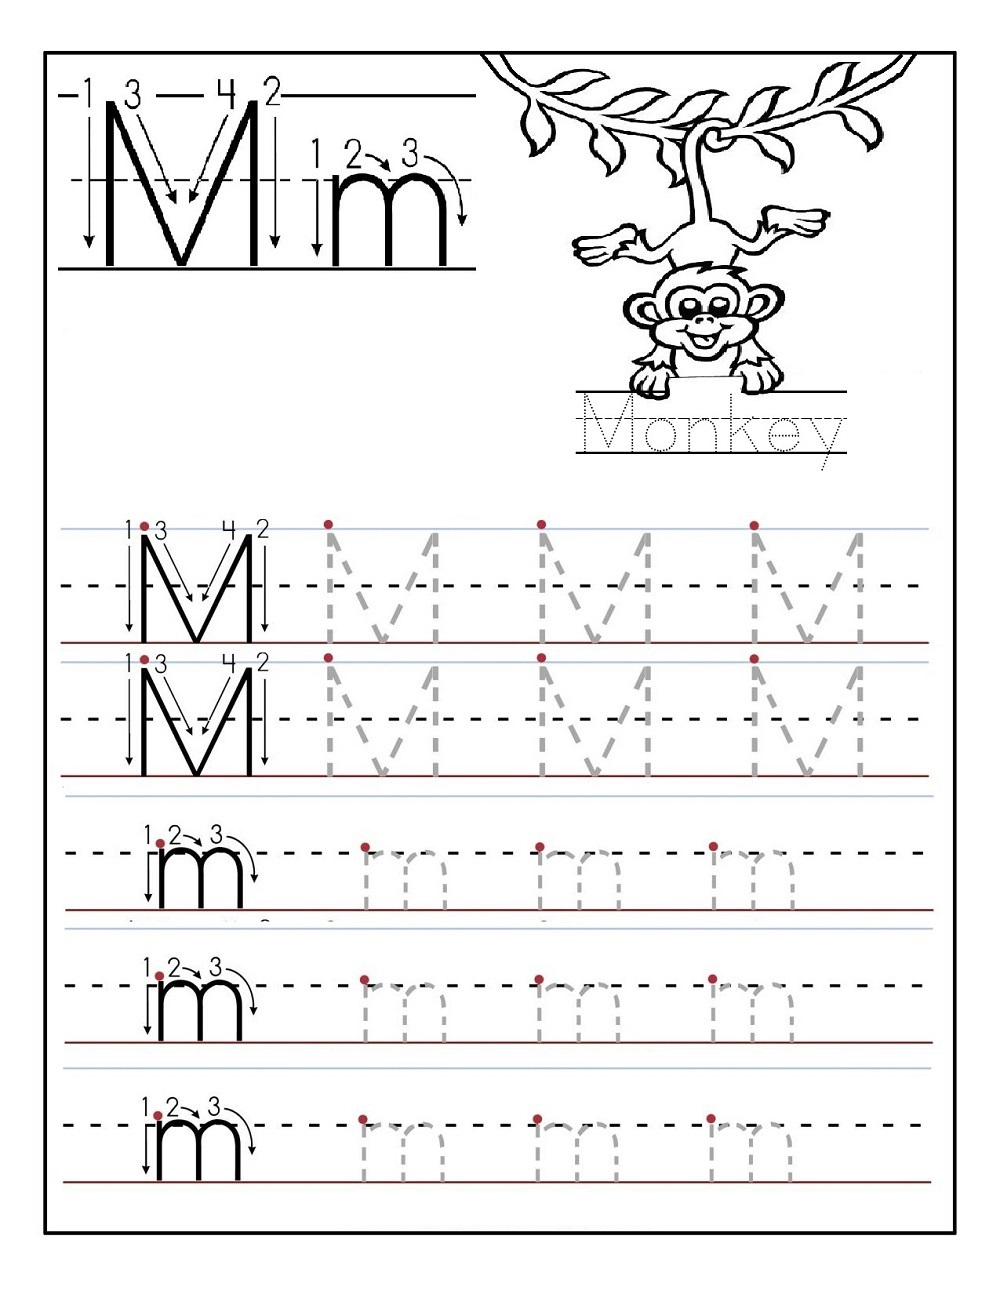 tracing letter worksheets easy